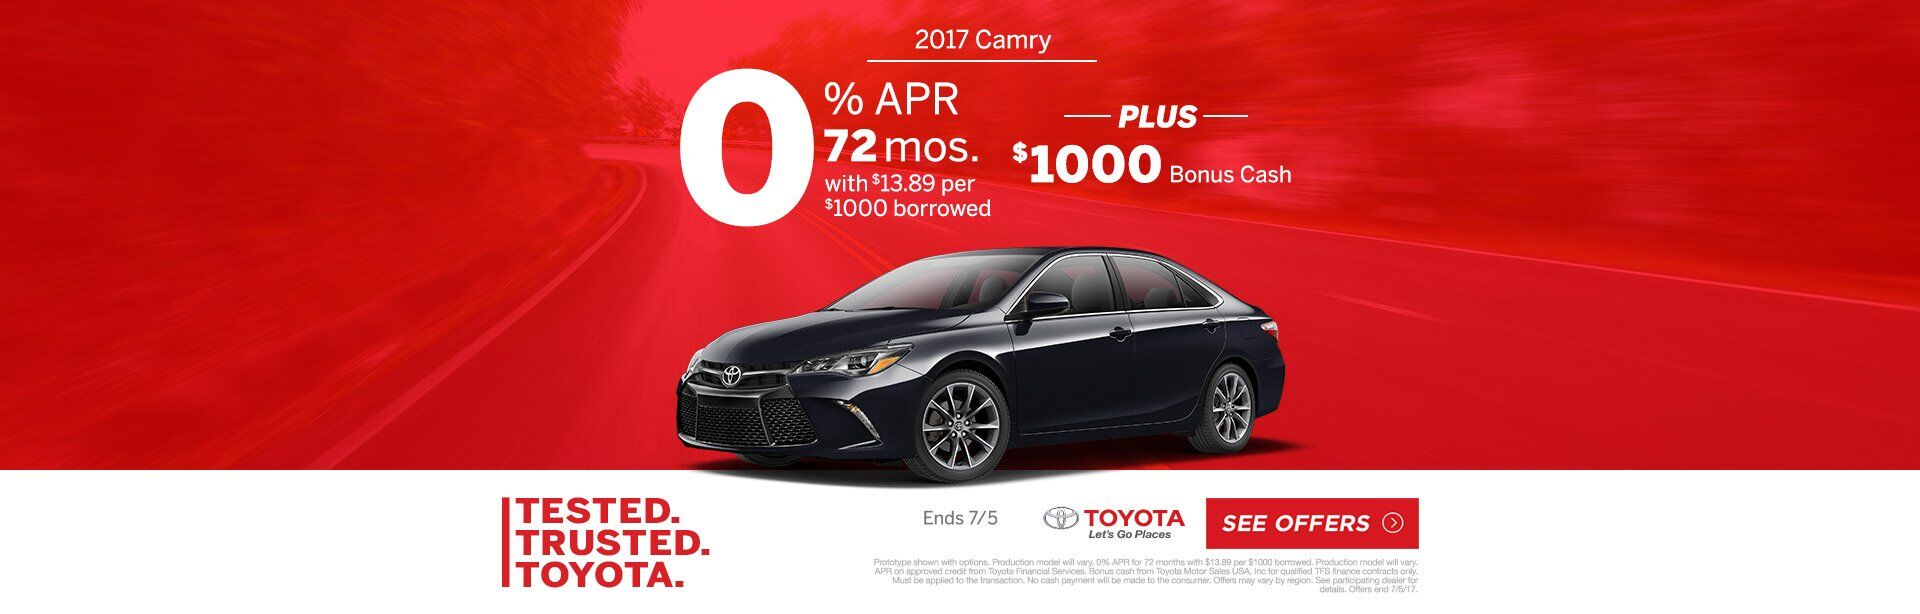 Test Trusted Toyota Camry 2017